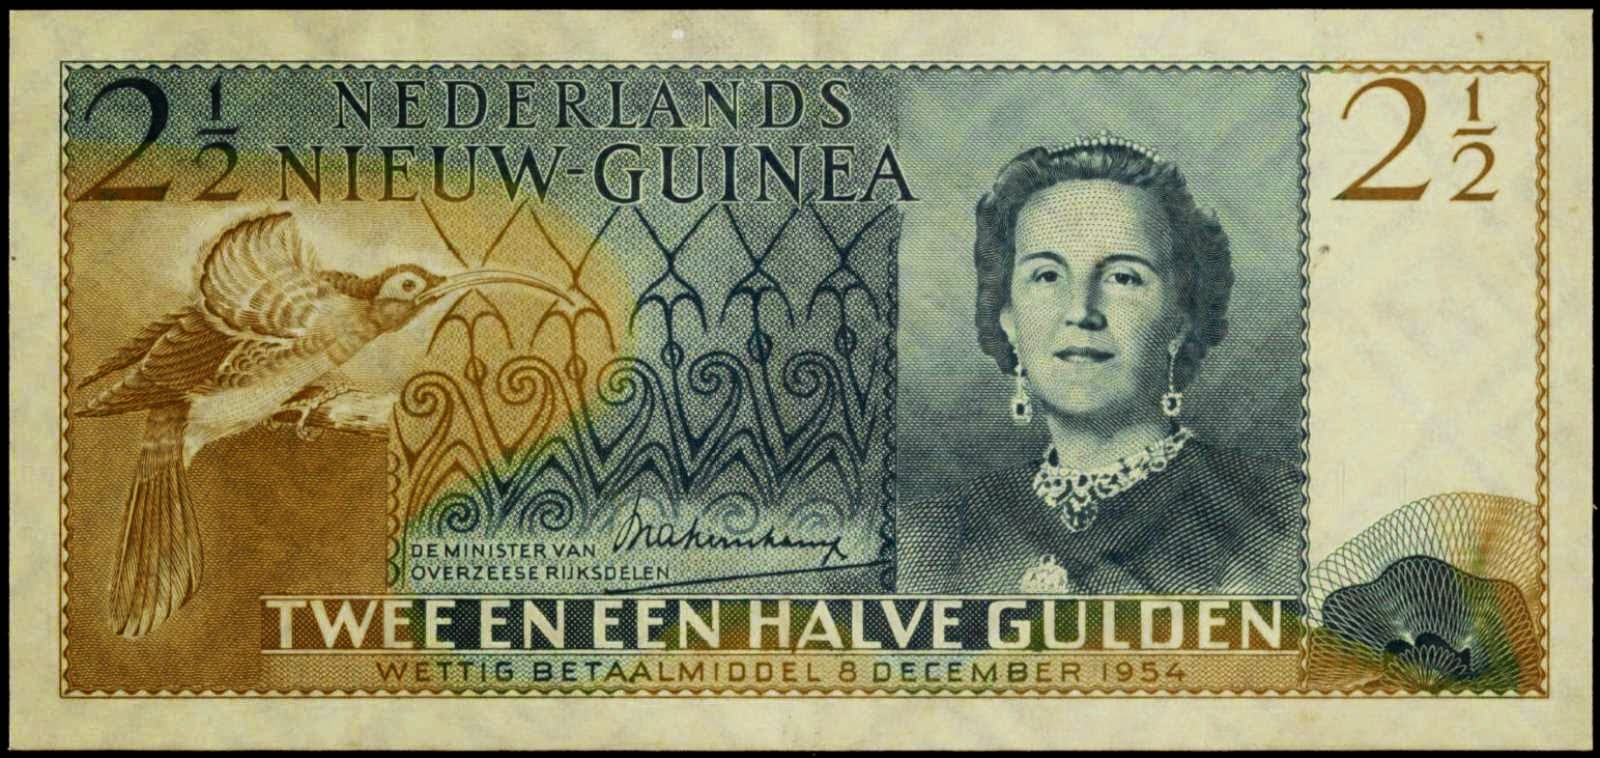 Netherlands New Guinea 2 1 2 Gulden Banknote 1954 Queen